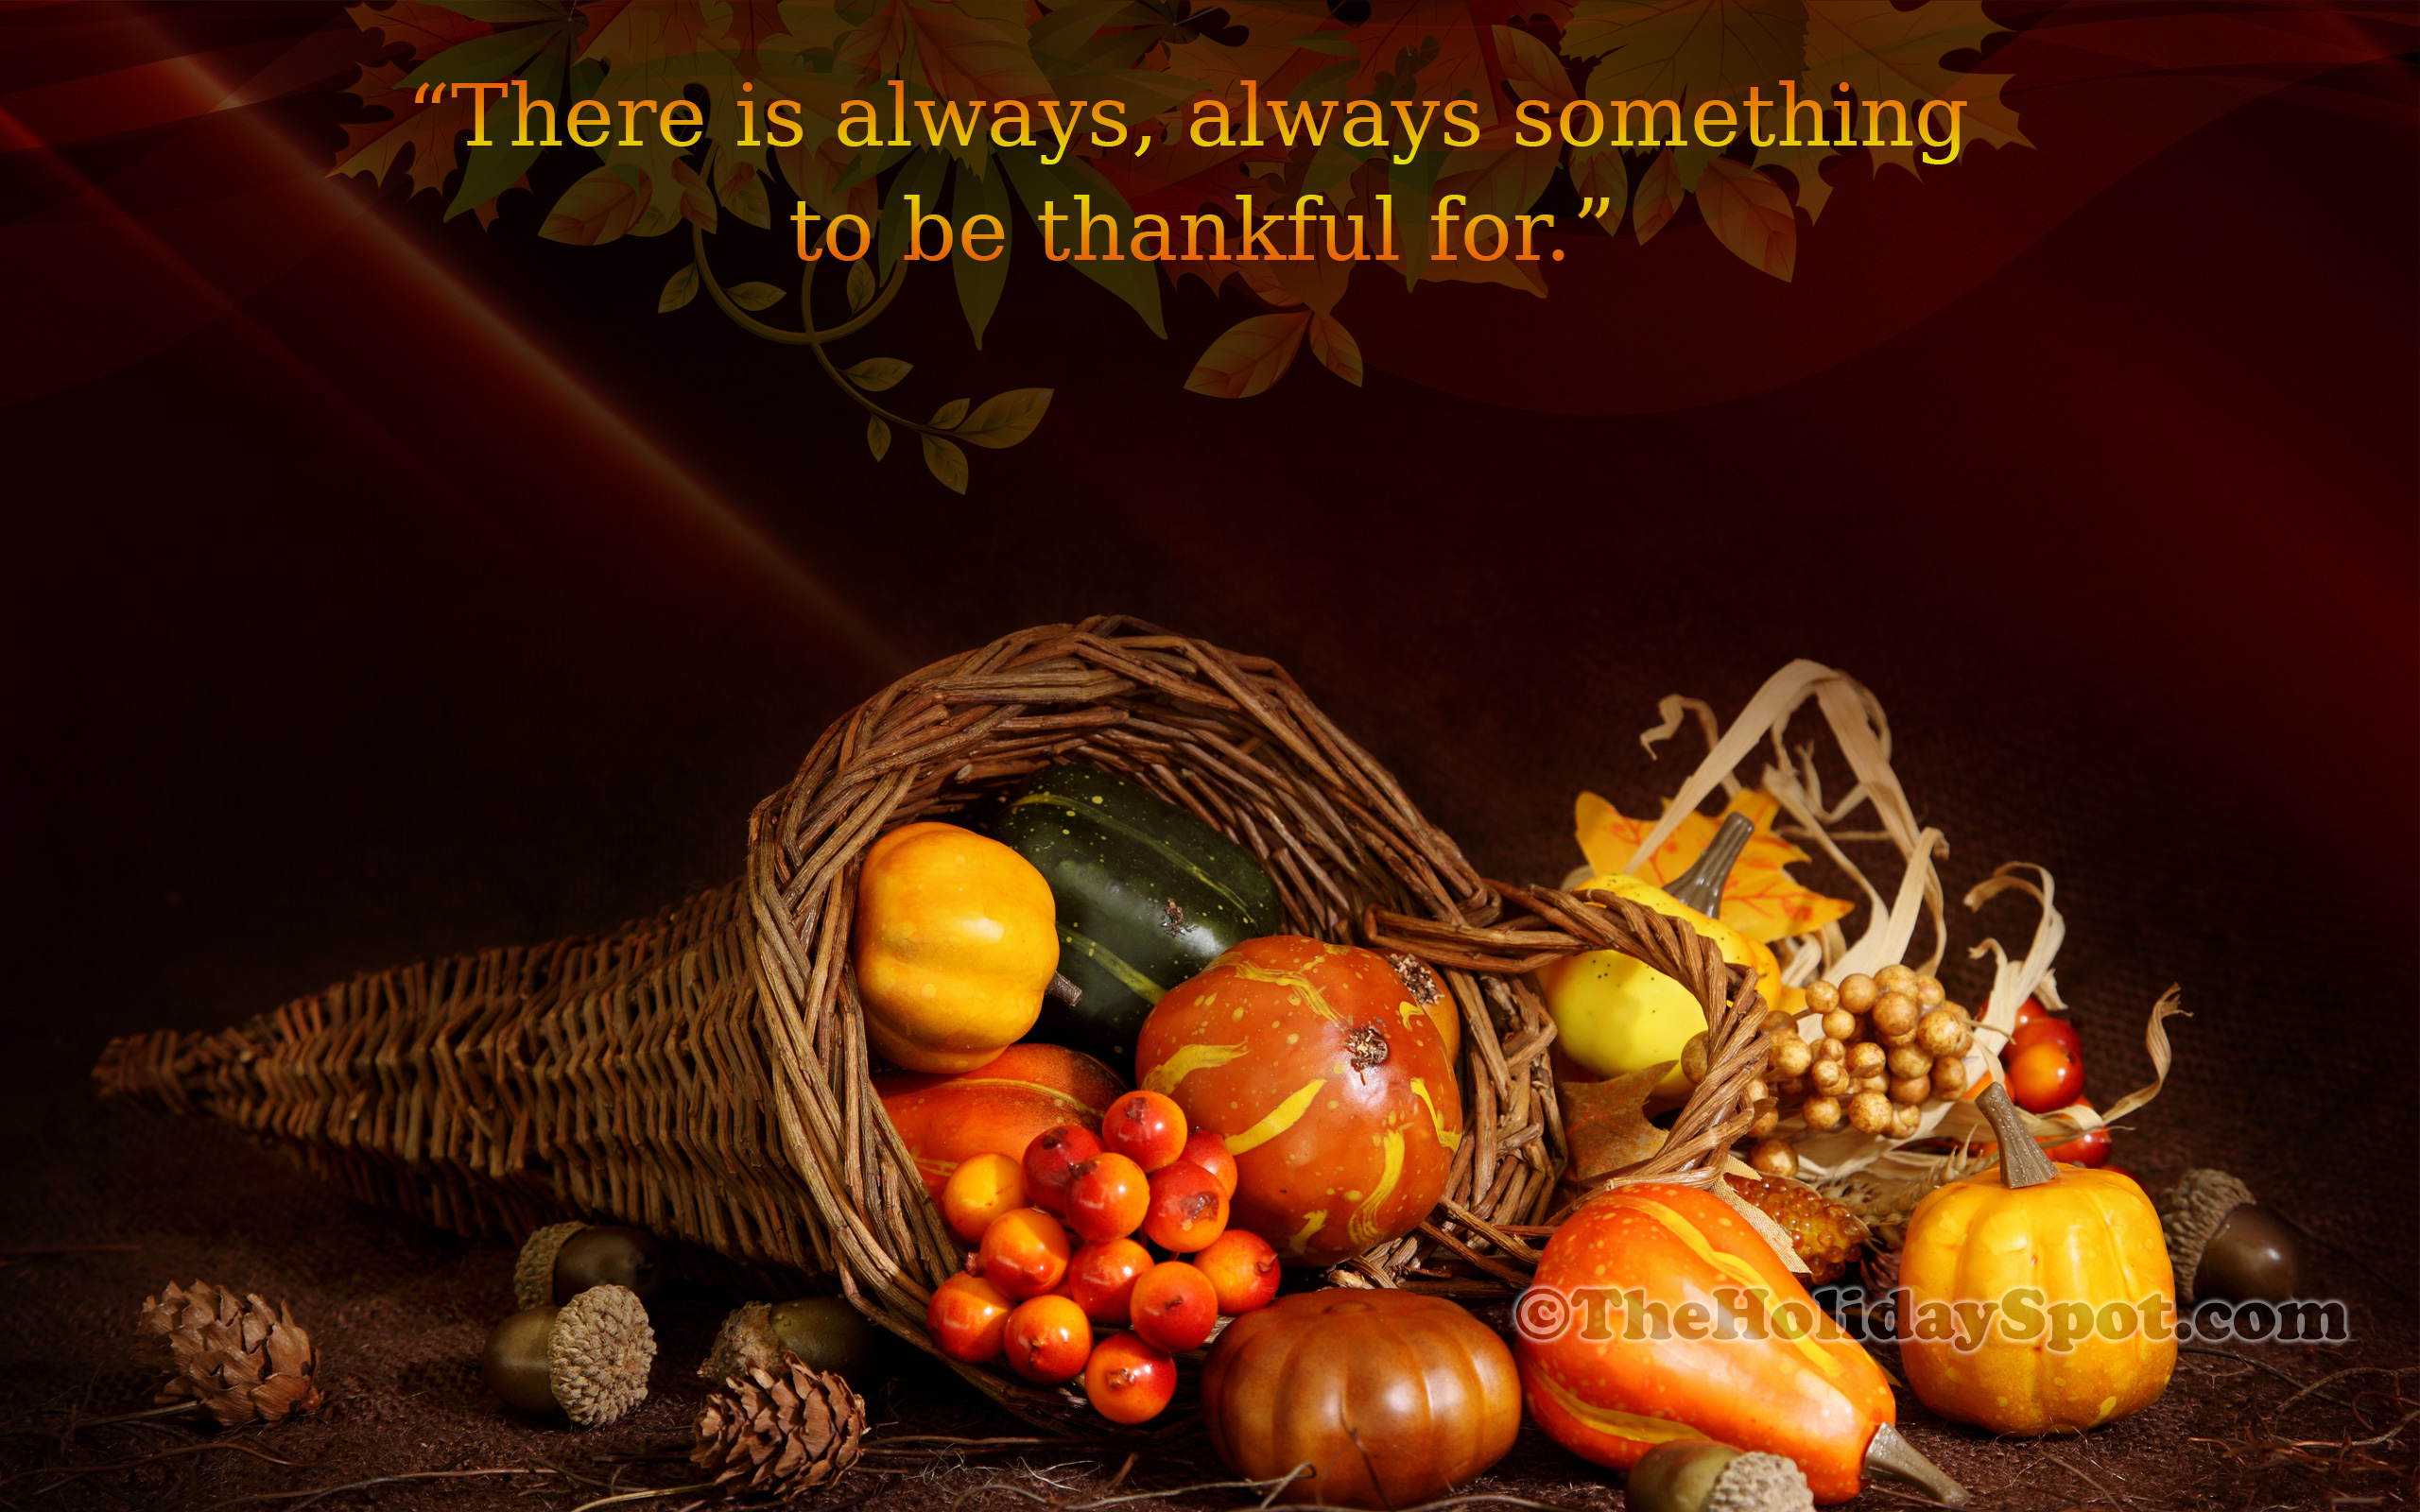 Thanksgiving Desktop Wallpaper 108 images in Collection Page 2 2560x1600